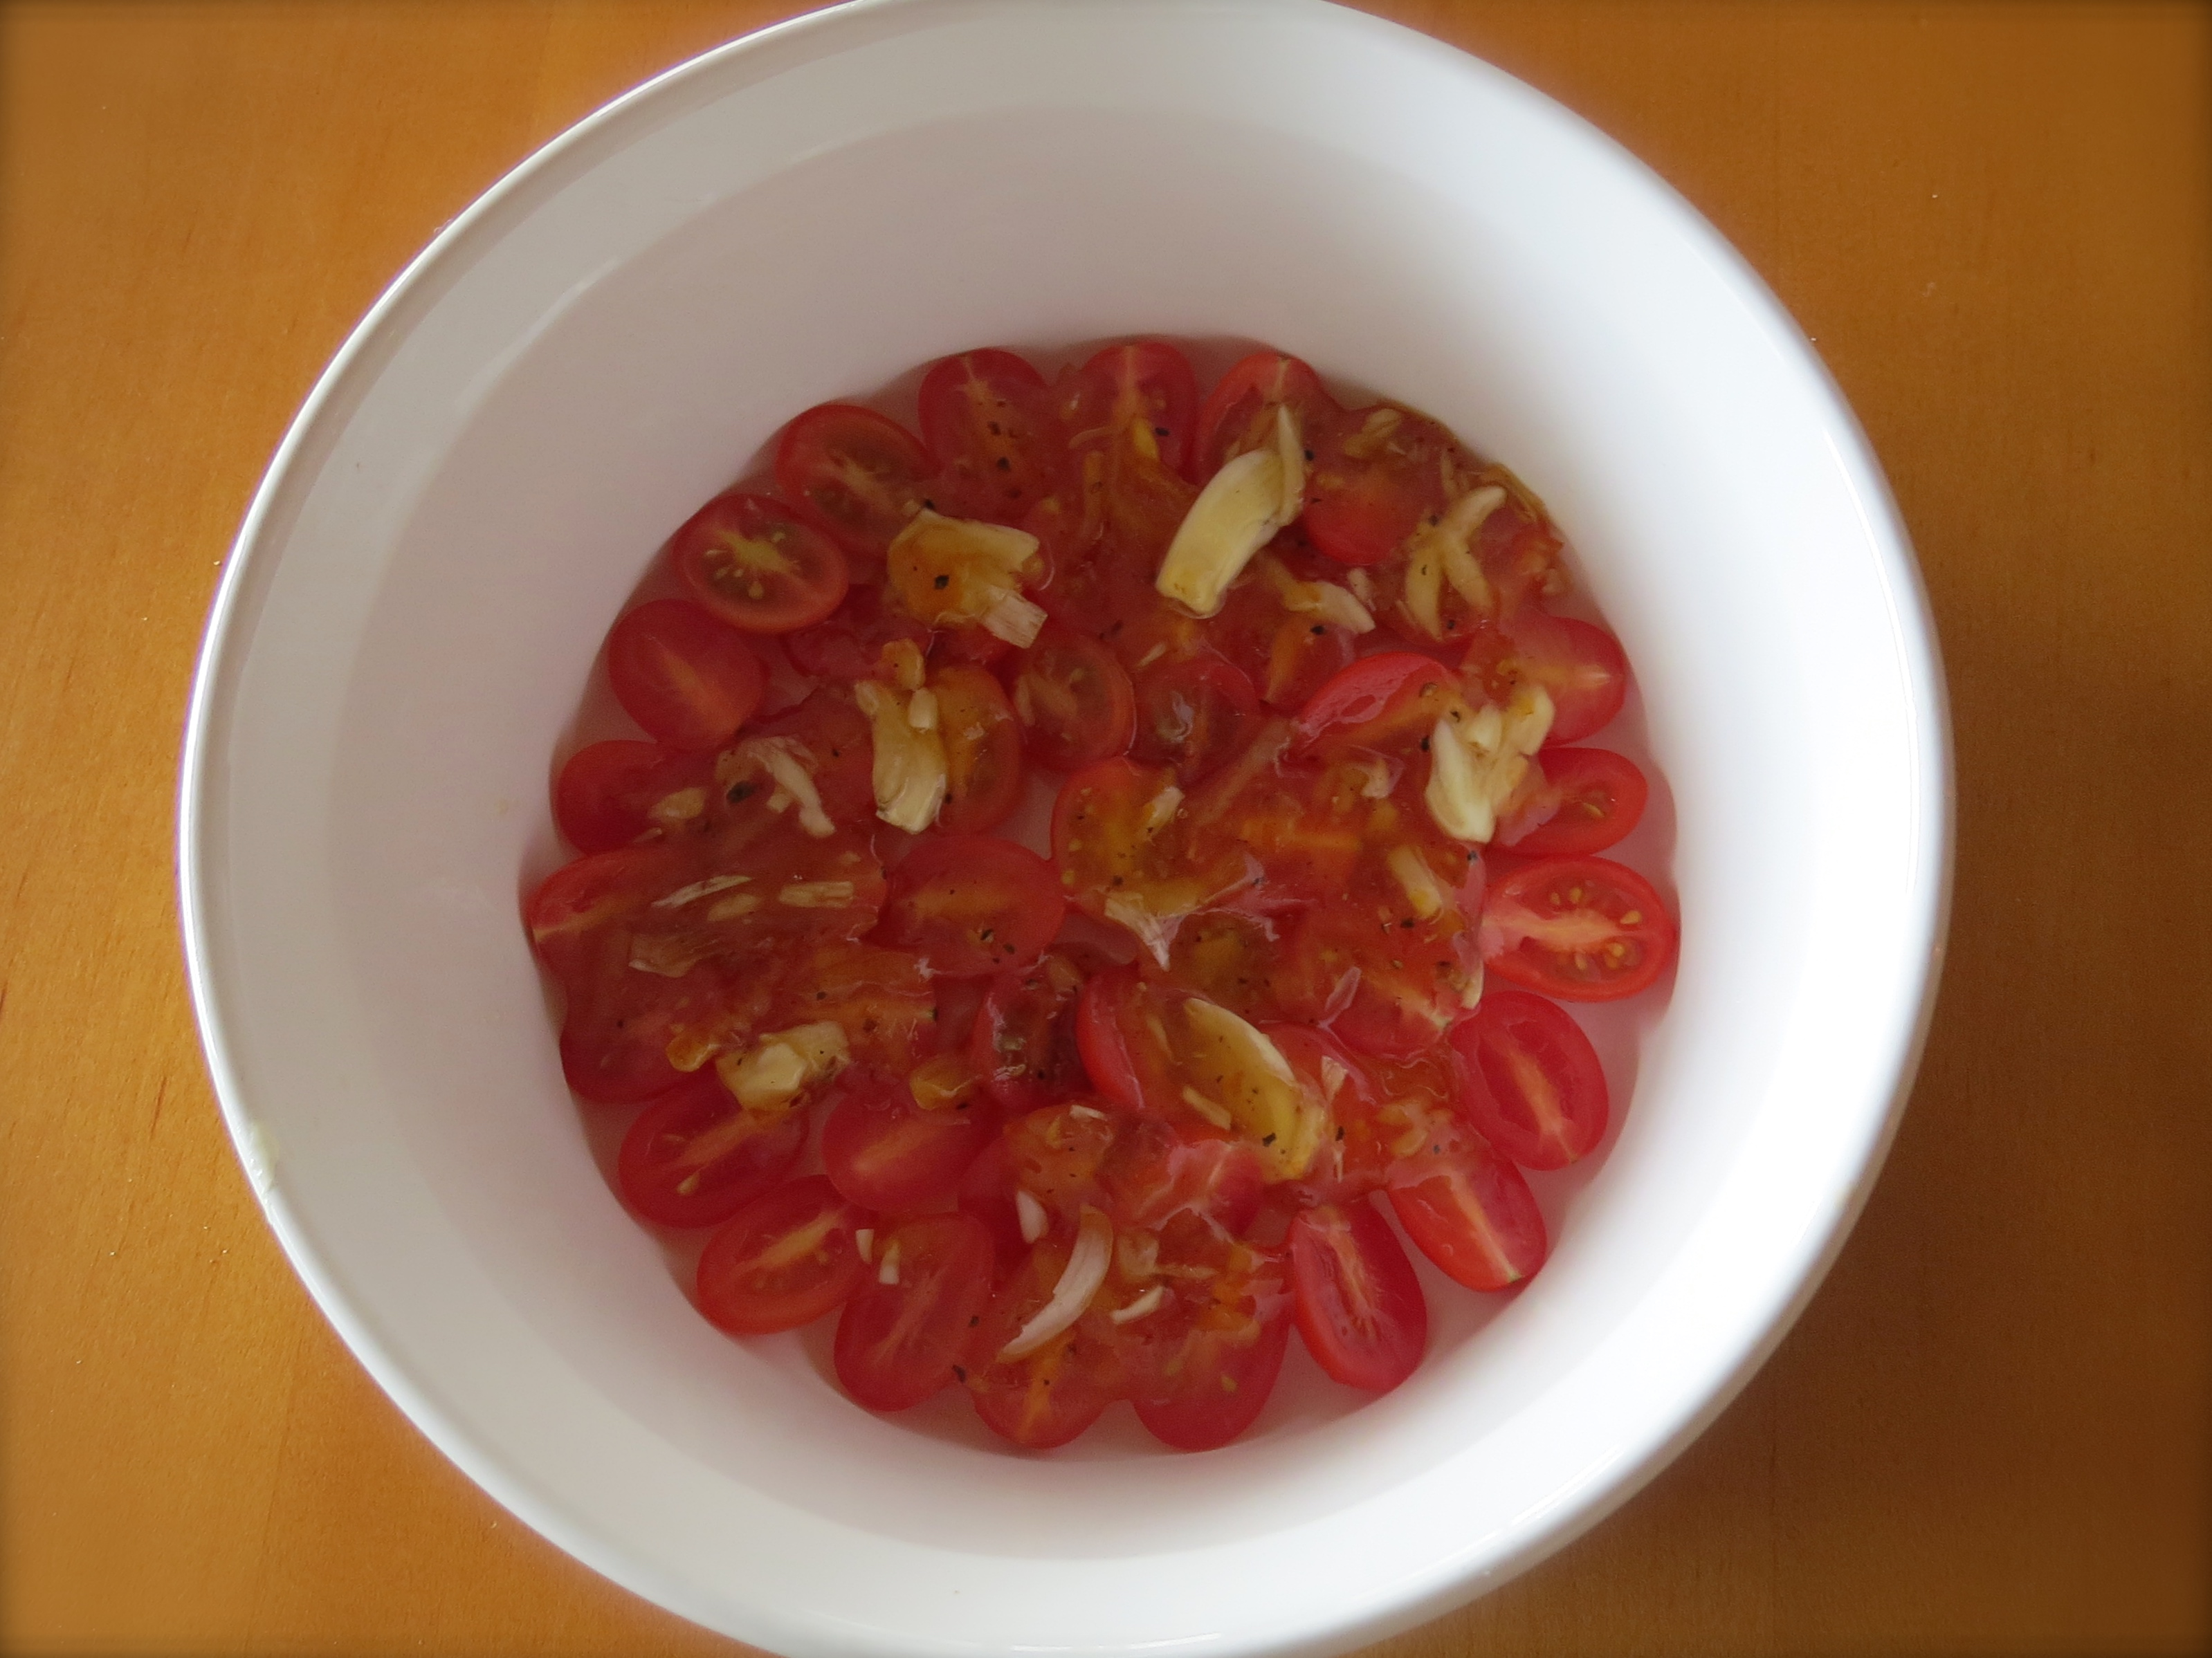 Honey-roasted Cherry Tomatoes, an easy topping to make and delicious on risotto and grilled or roasted vegetables.